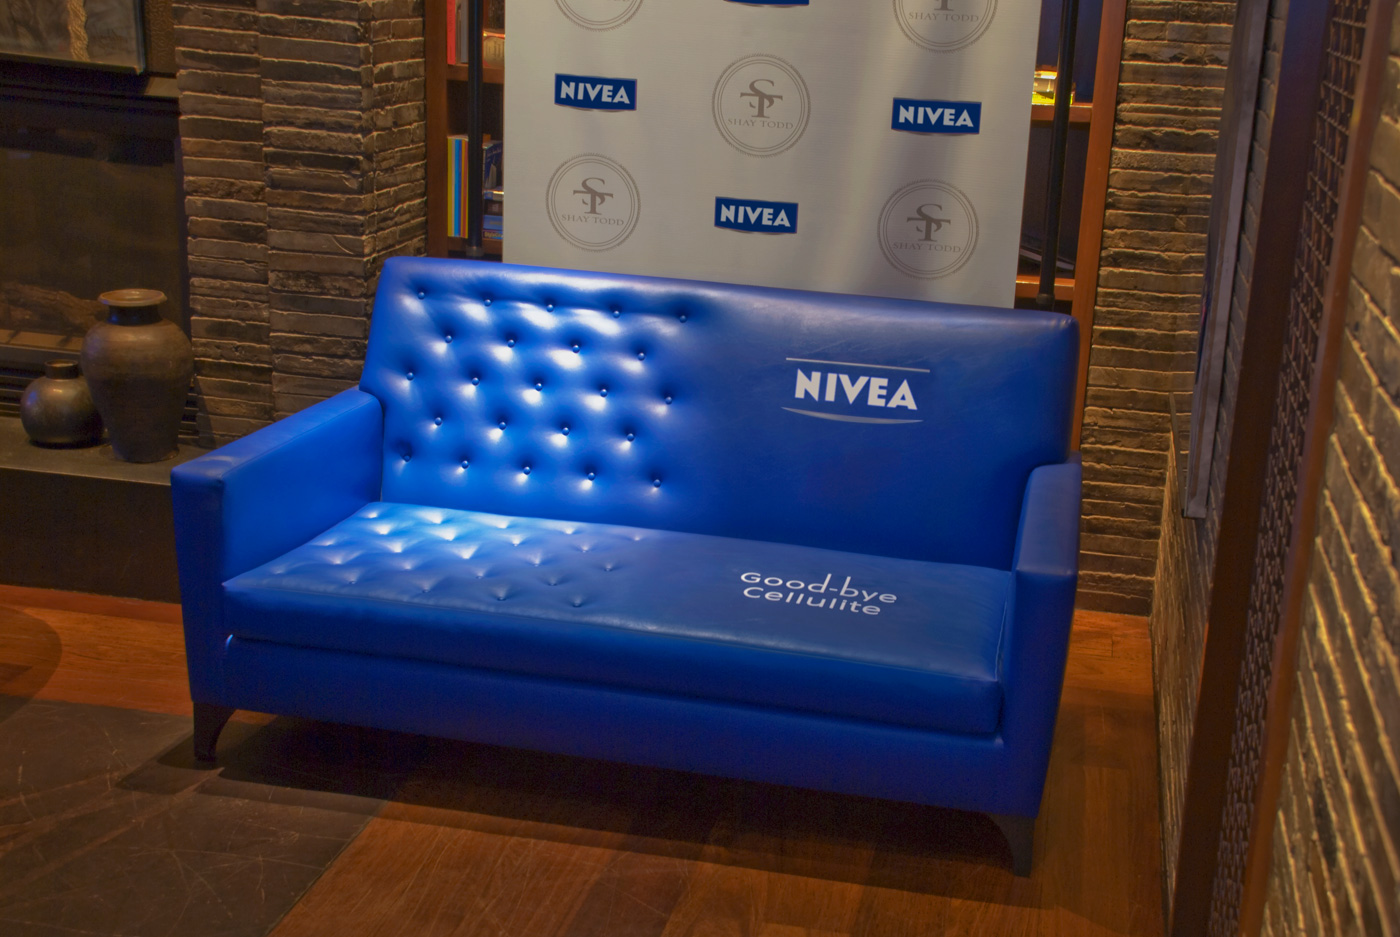 Peachy Nivea Cellulite Couch The Inspiration Room Short Links Chair Design For Home Short Linksinfo